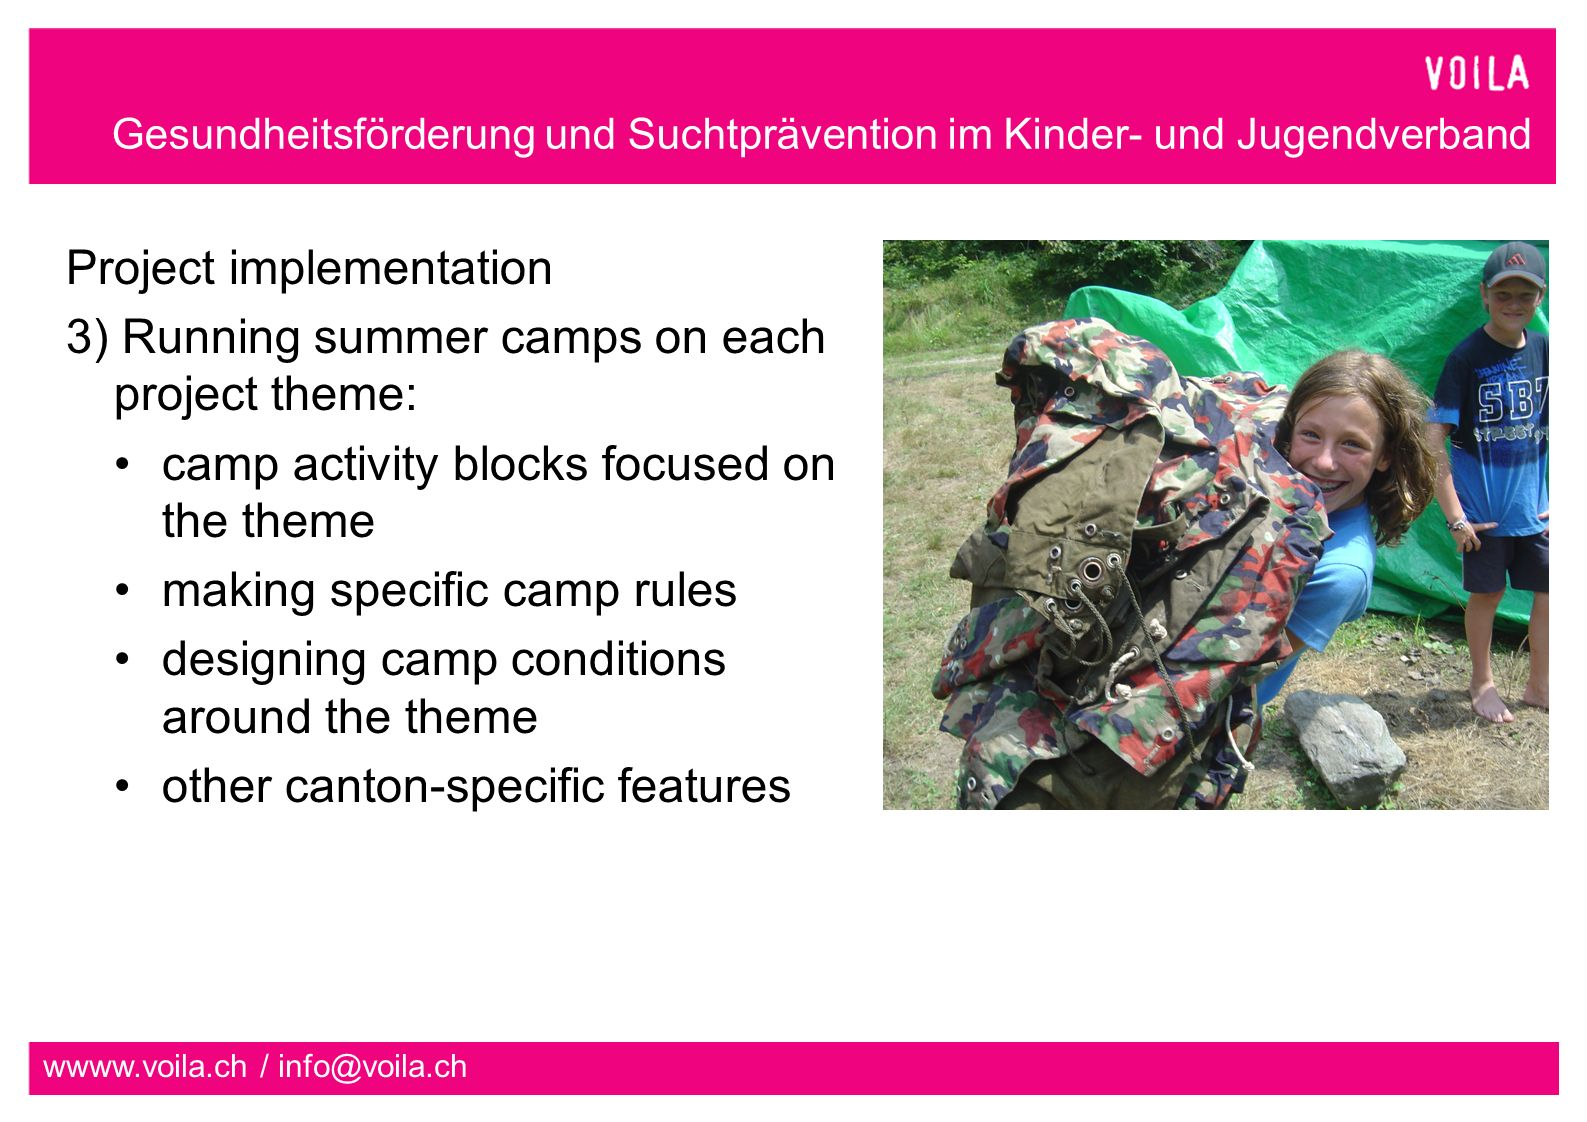 Gesundheitsförderung und Suchtprävention im Kinder- und Jugendverband wwww.voila.ch / info@voila.ch Project implementation 3) Running summer camps on each project theme: camp activity blocks focused on the theme making specific camp rules designing camp conditions around the theme other canton-specific features